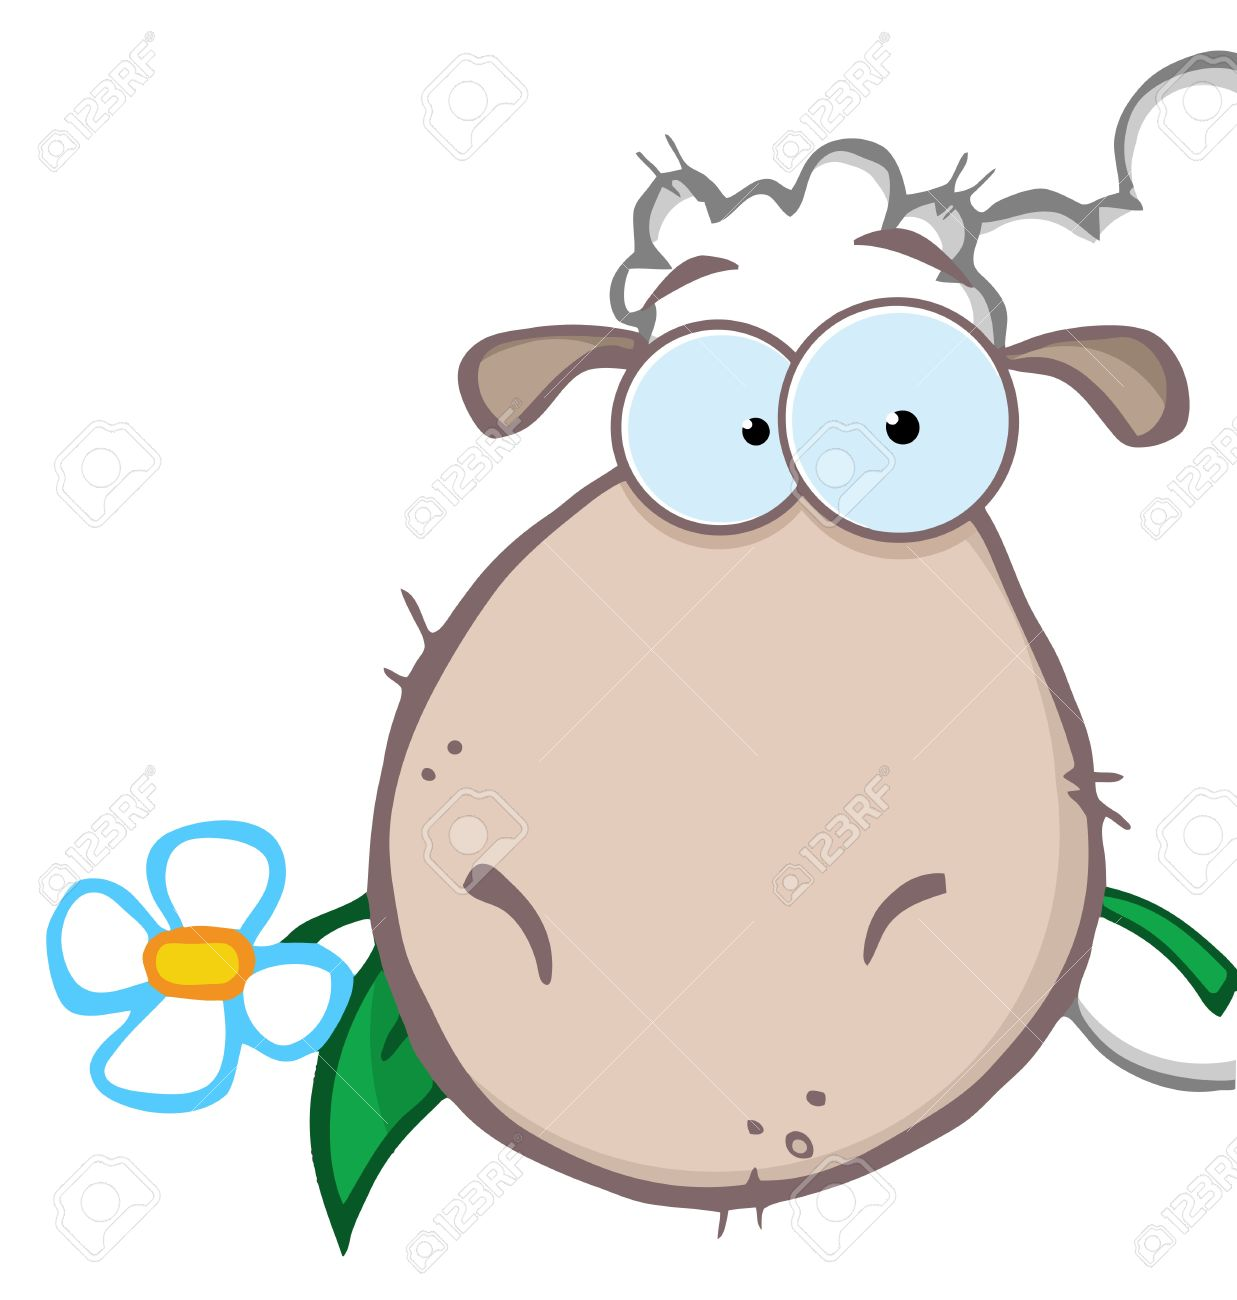 Sheep Head Carrying A Flower In Its Mouth Royalty Free Cliparts.